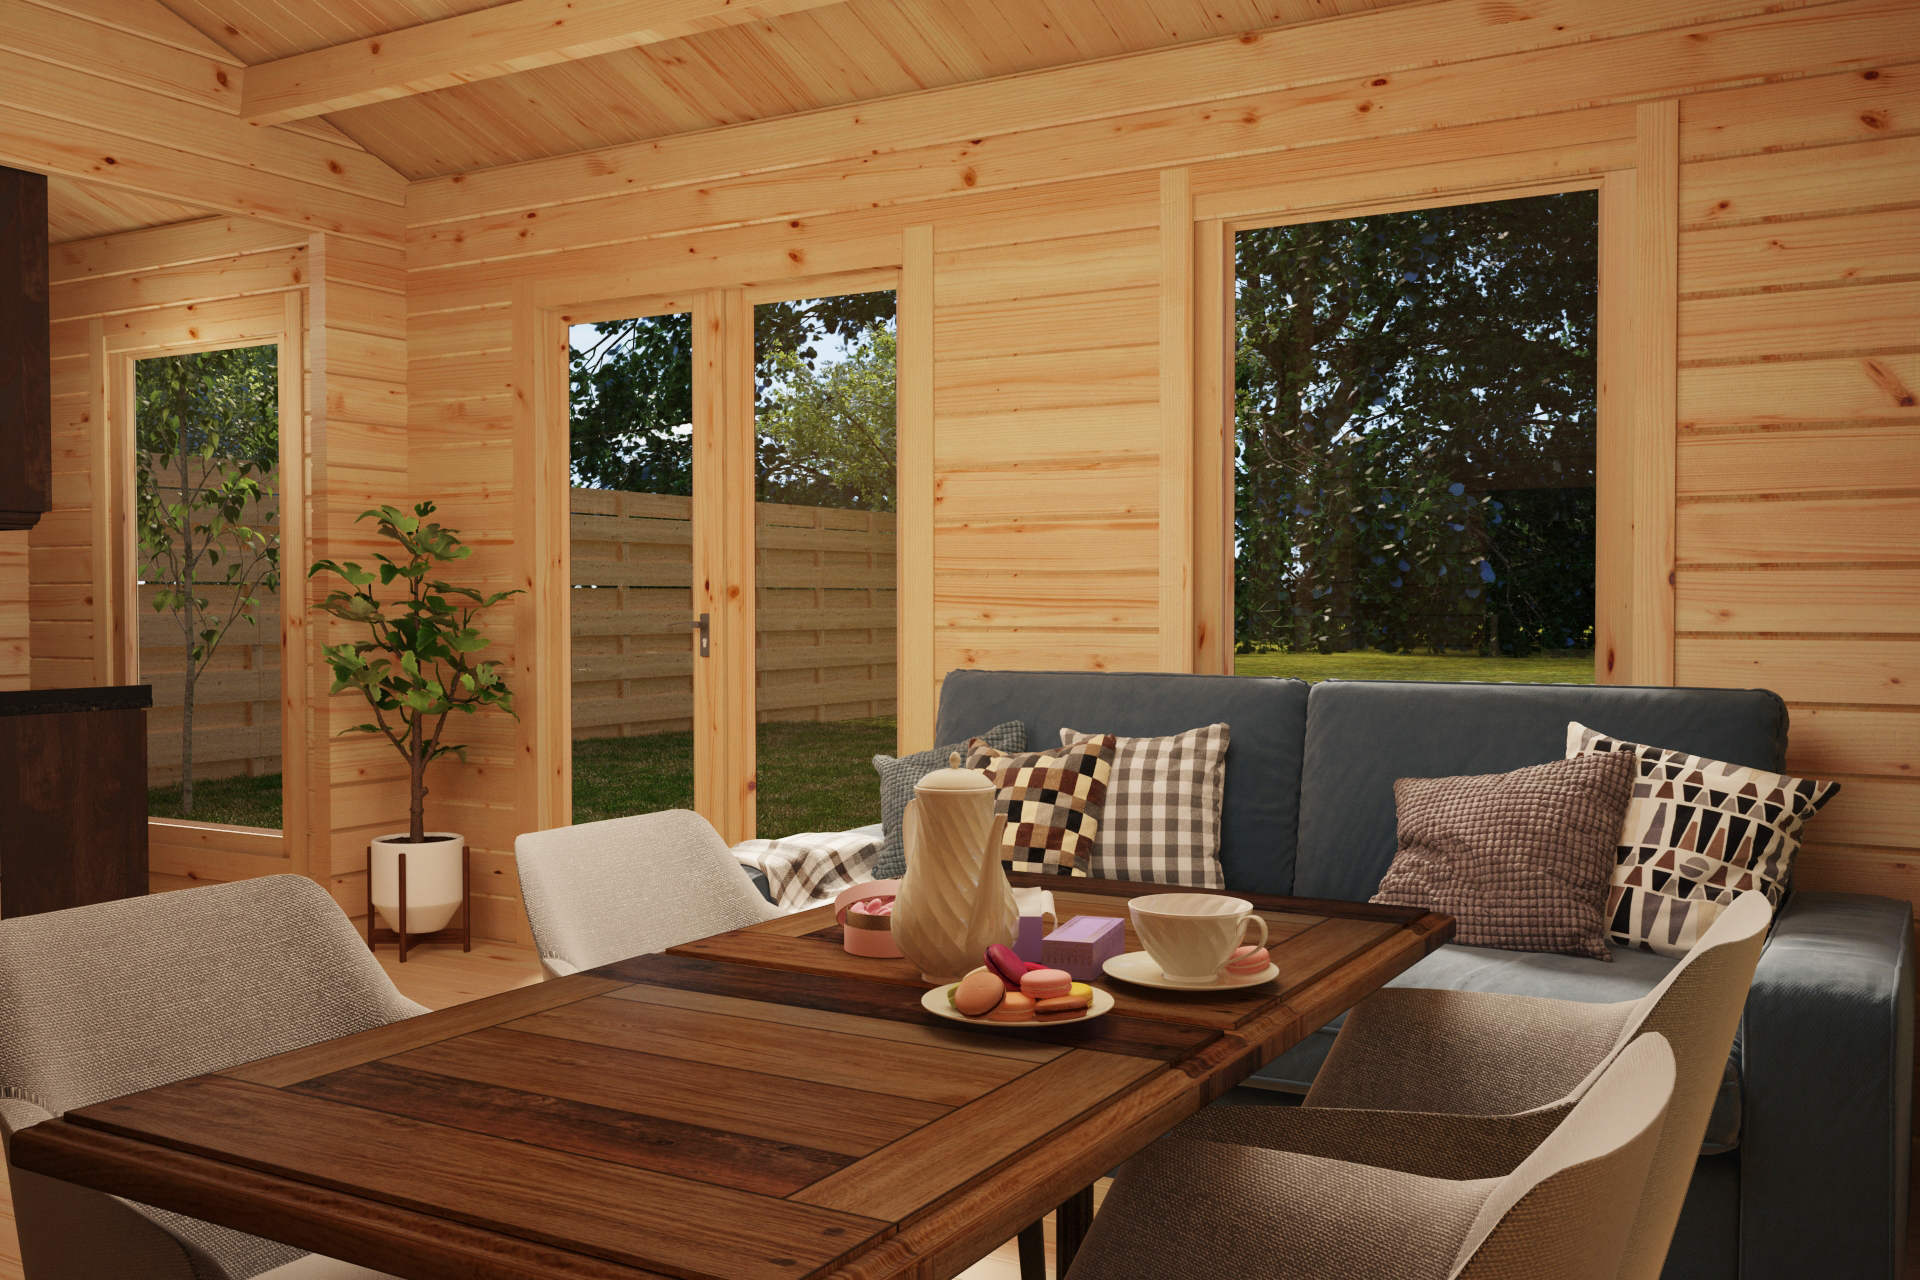 Log Cabin with One Bedroom Sweden C 22m2 / 6 x 4 m / 70